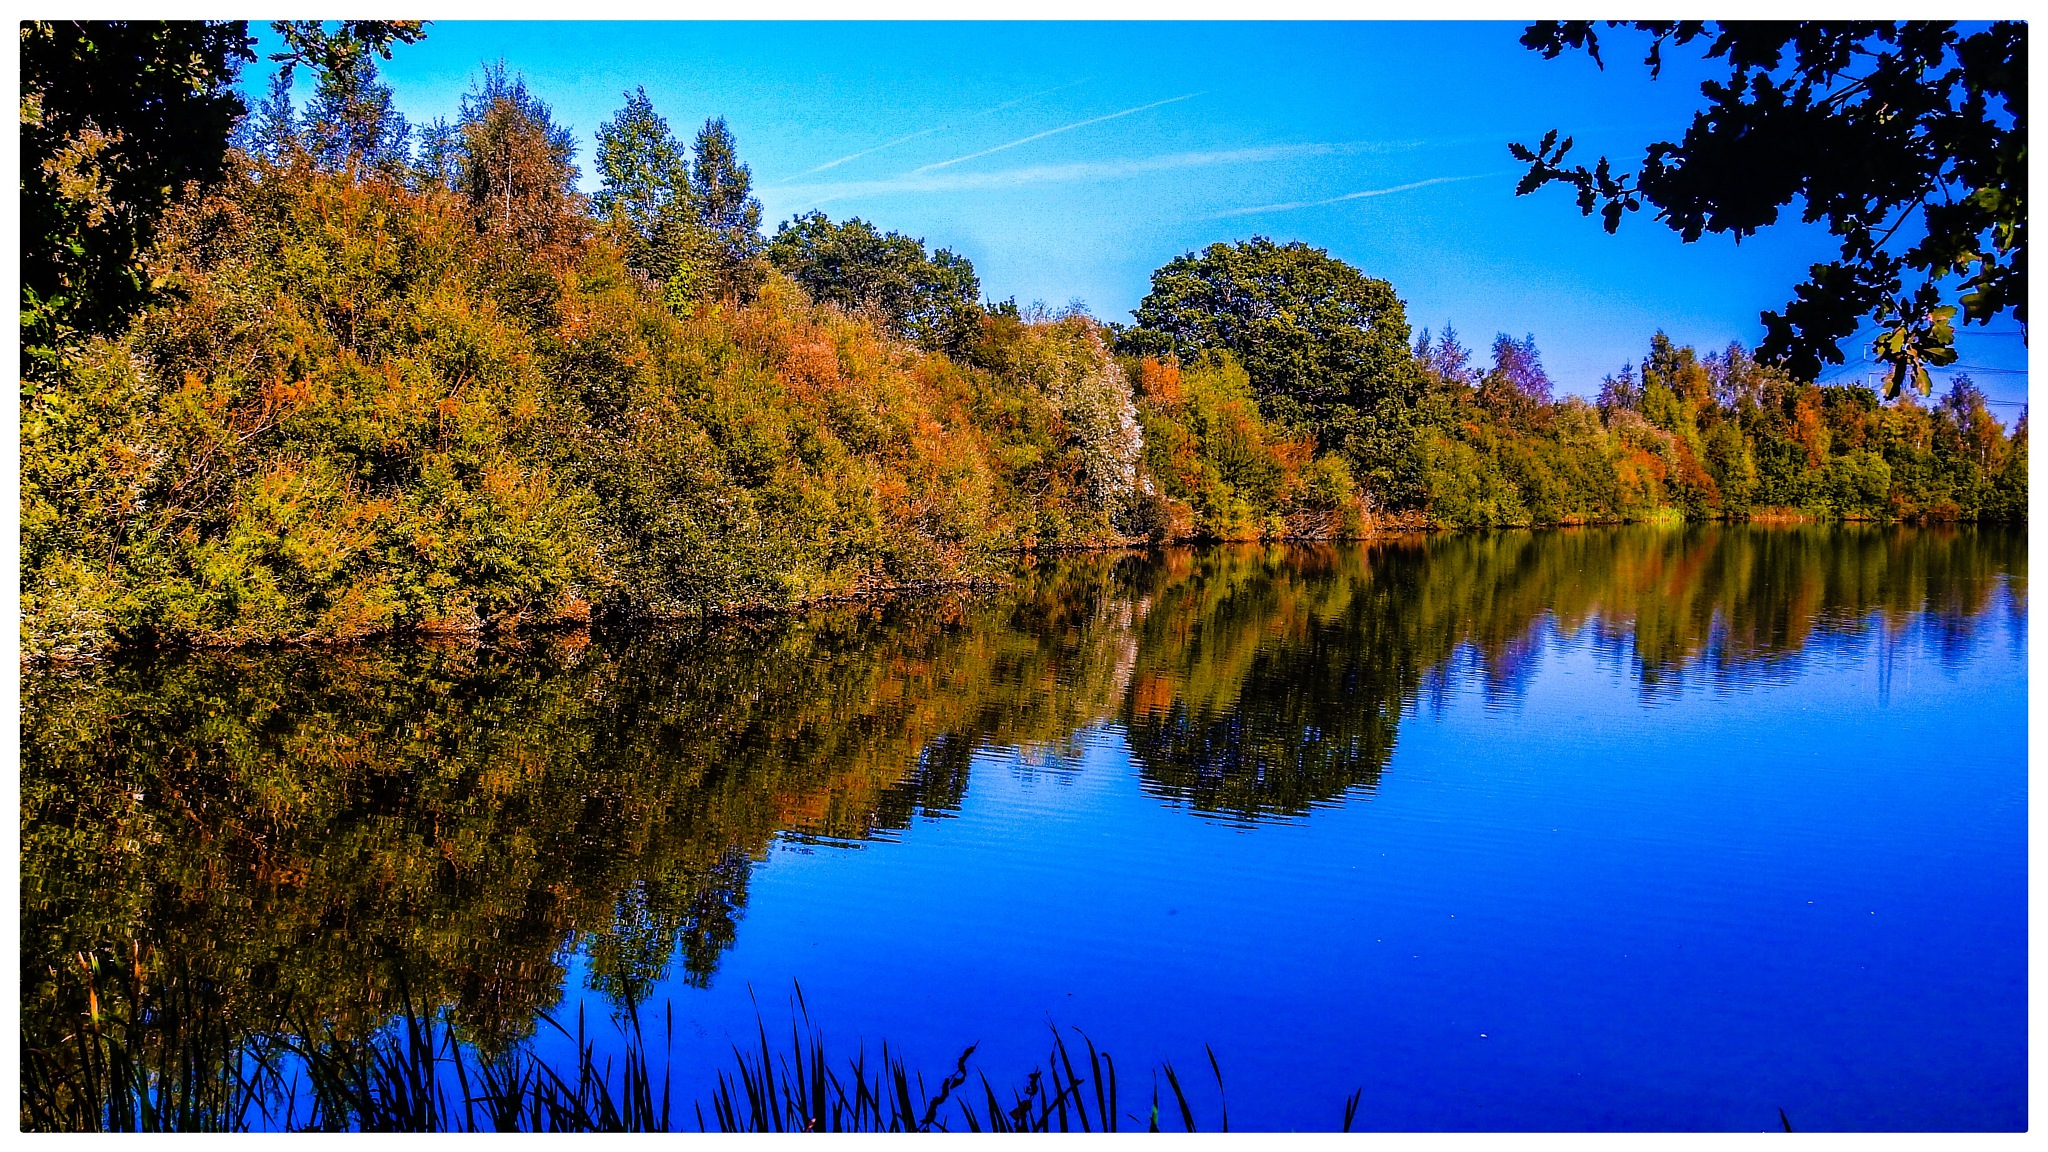 Autumn colour reflections  by Alvin York